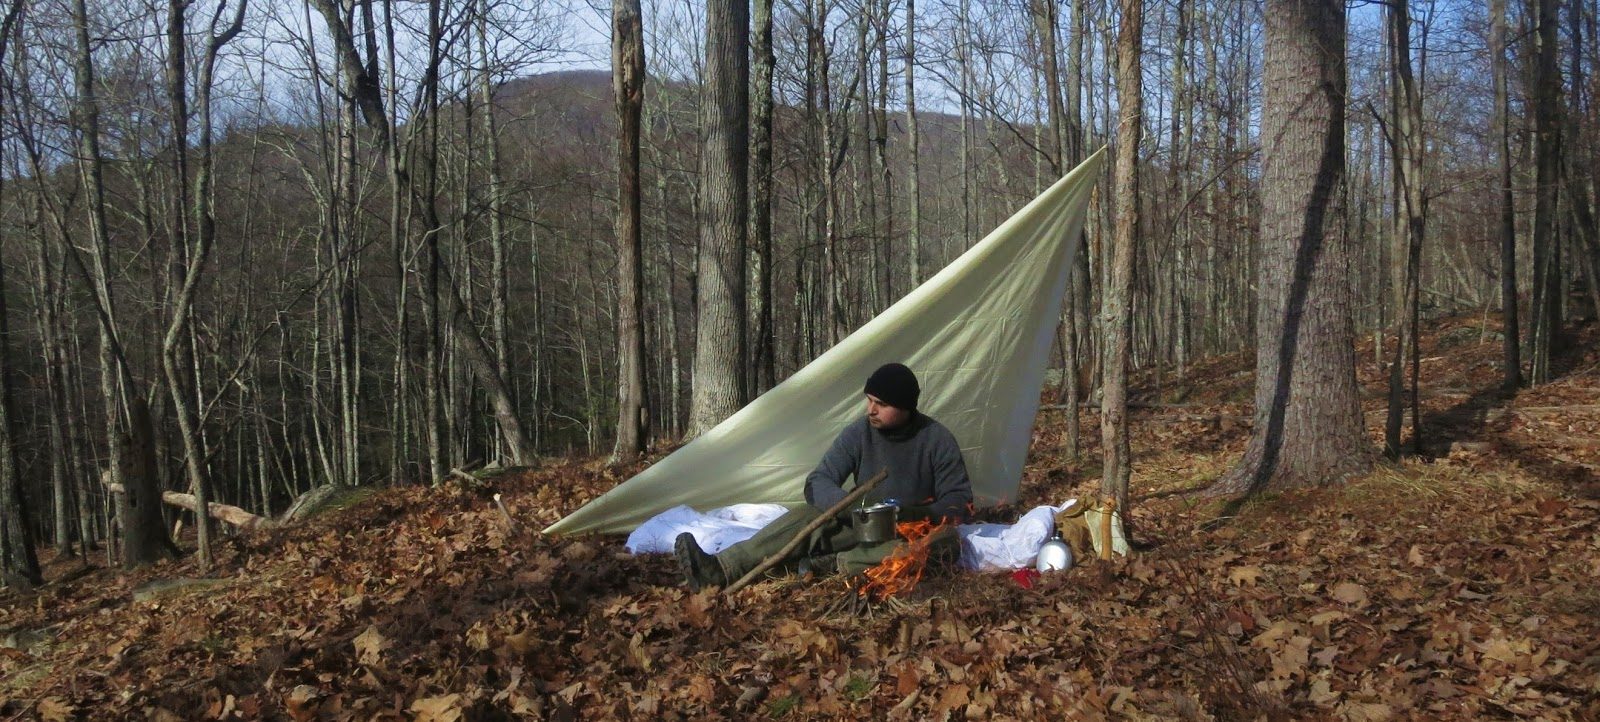 i had my wool blanket with me  i folded it over and used it as a ground pad  at first i pulled some dead leafs together but they were wet     wood trekker  trip report  classic backpacking 1 30 16   1 31 16  rh   woodtrekker blogspot